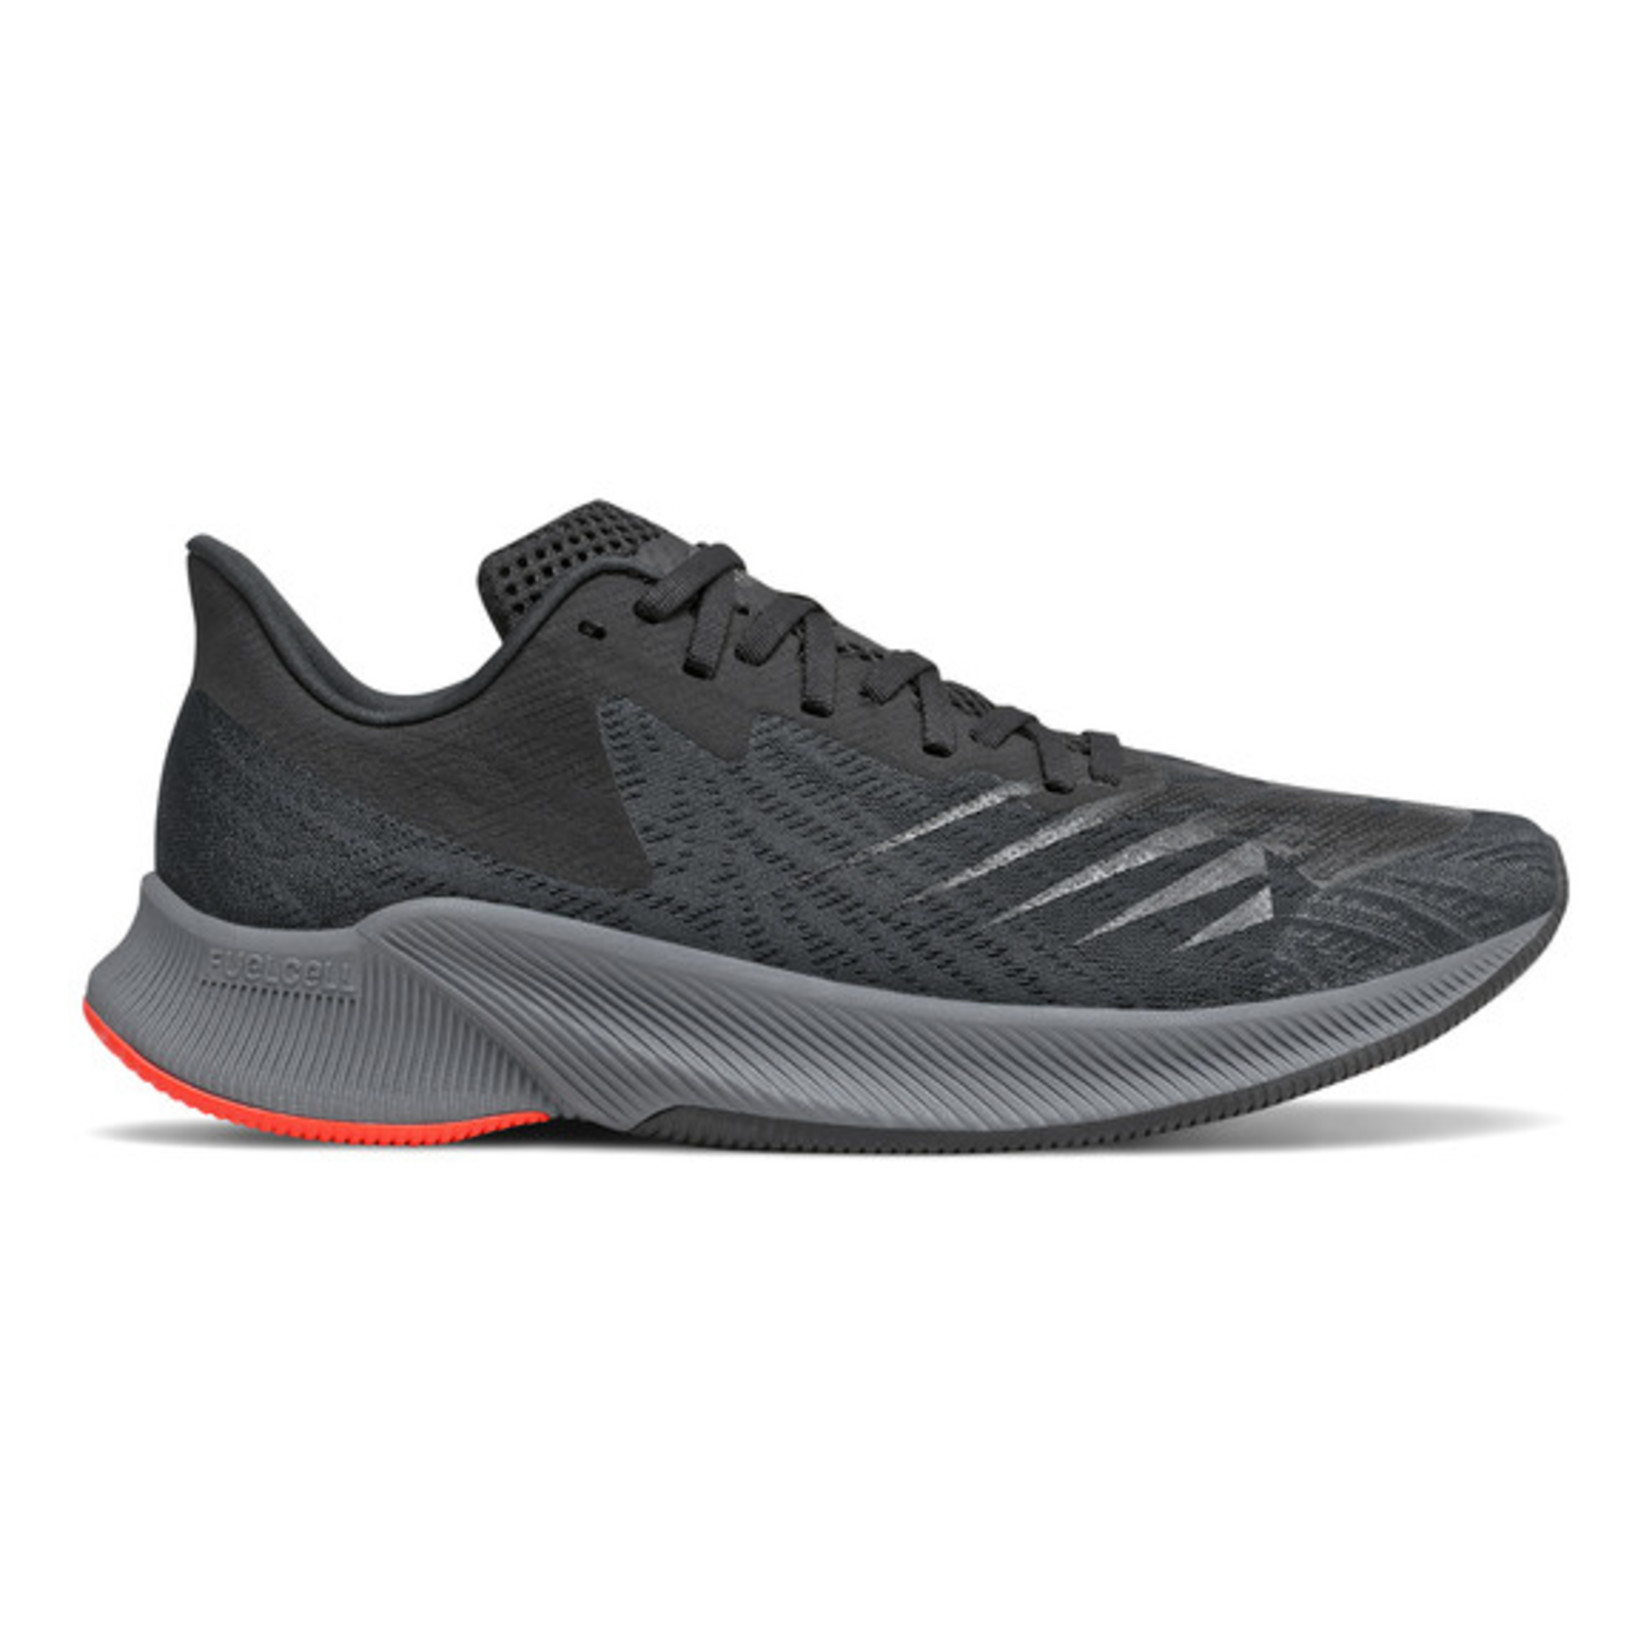 New Balance New Balance Fuelcell Prism